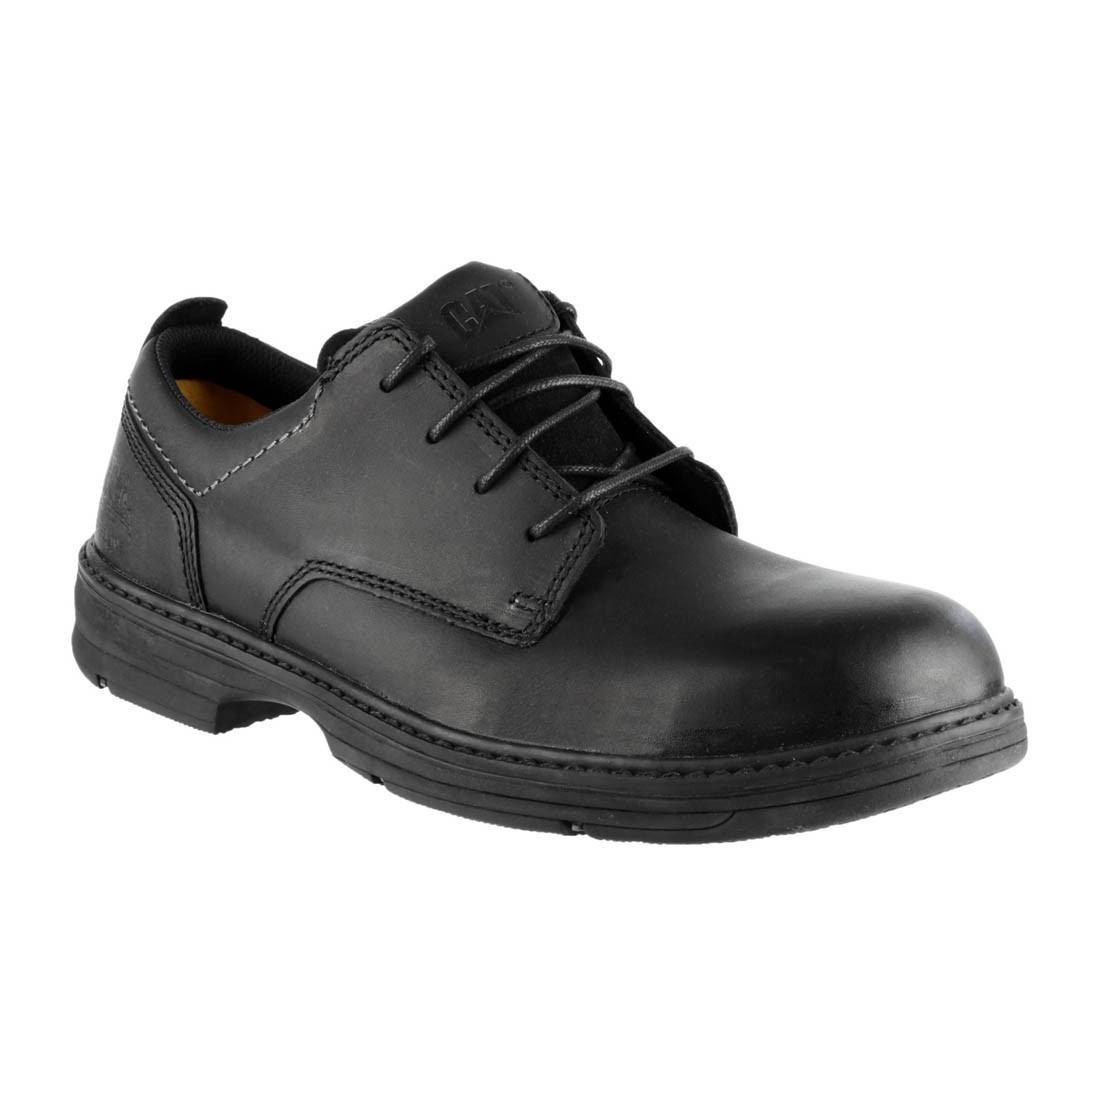 Most Comfortable Shoe Brands Men